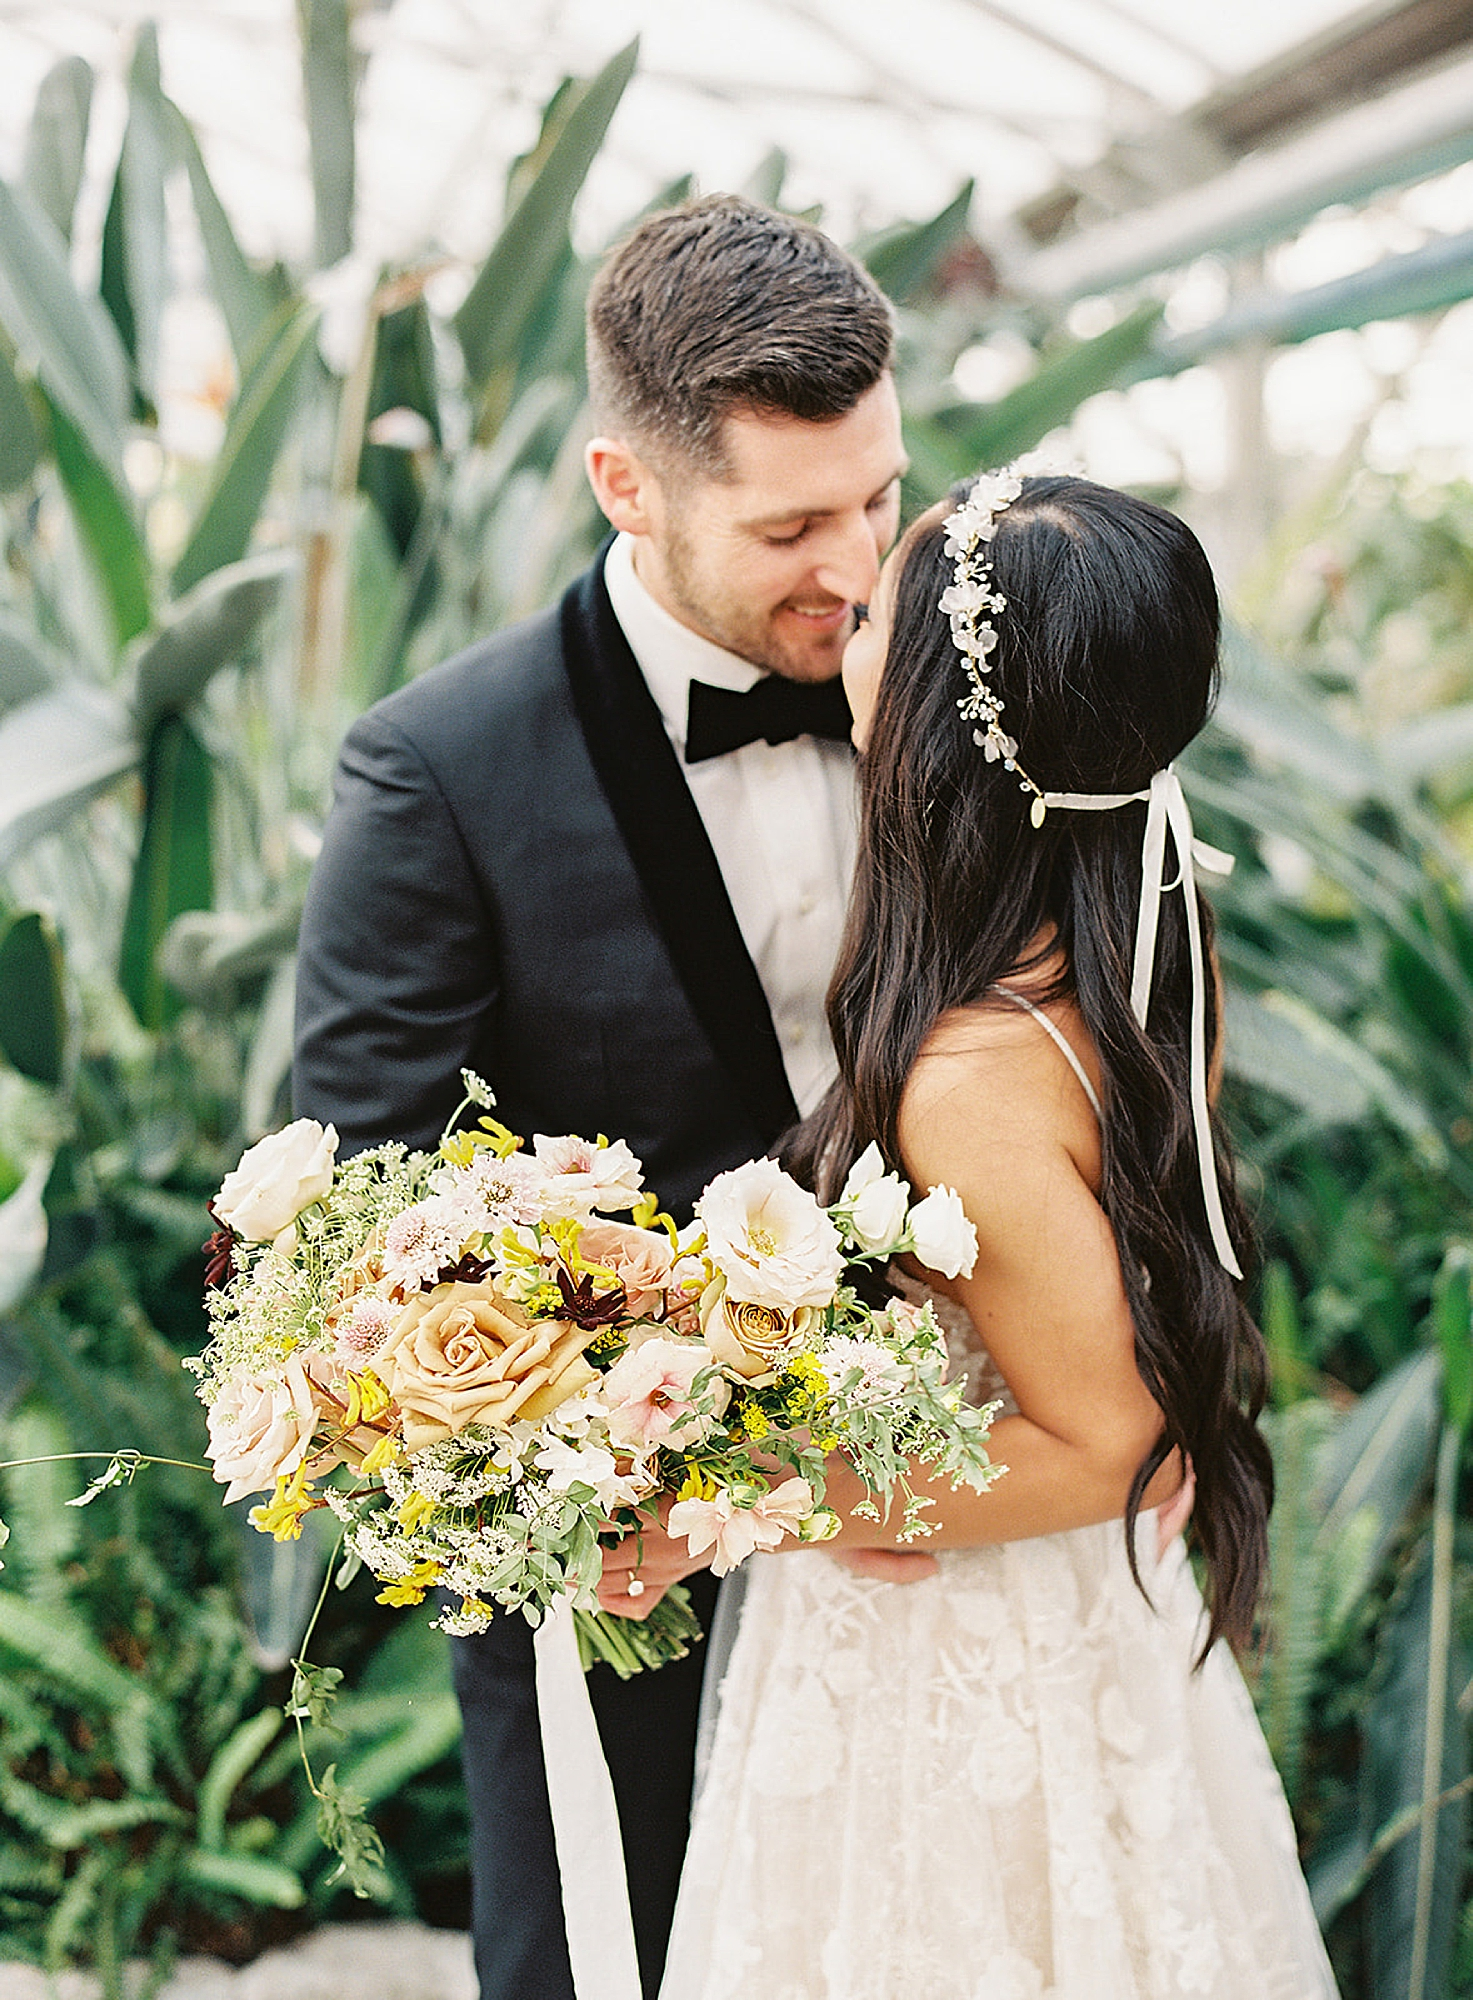 Fairmount Horticultural Center Film Wedding Photography by Magdalena Studios 0025